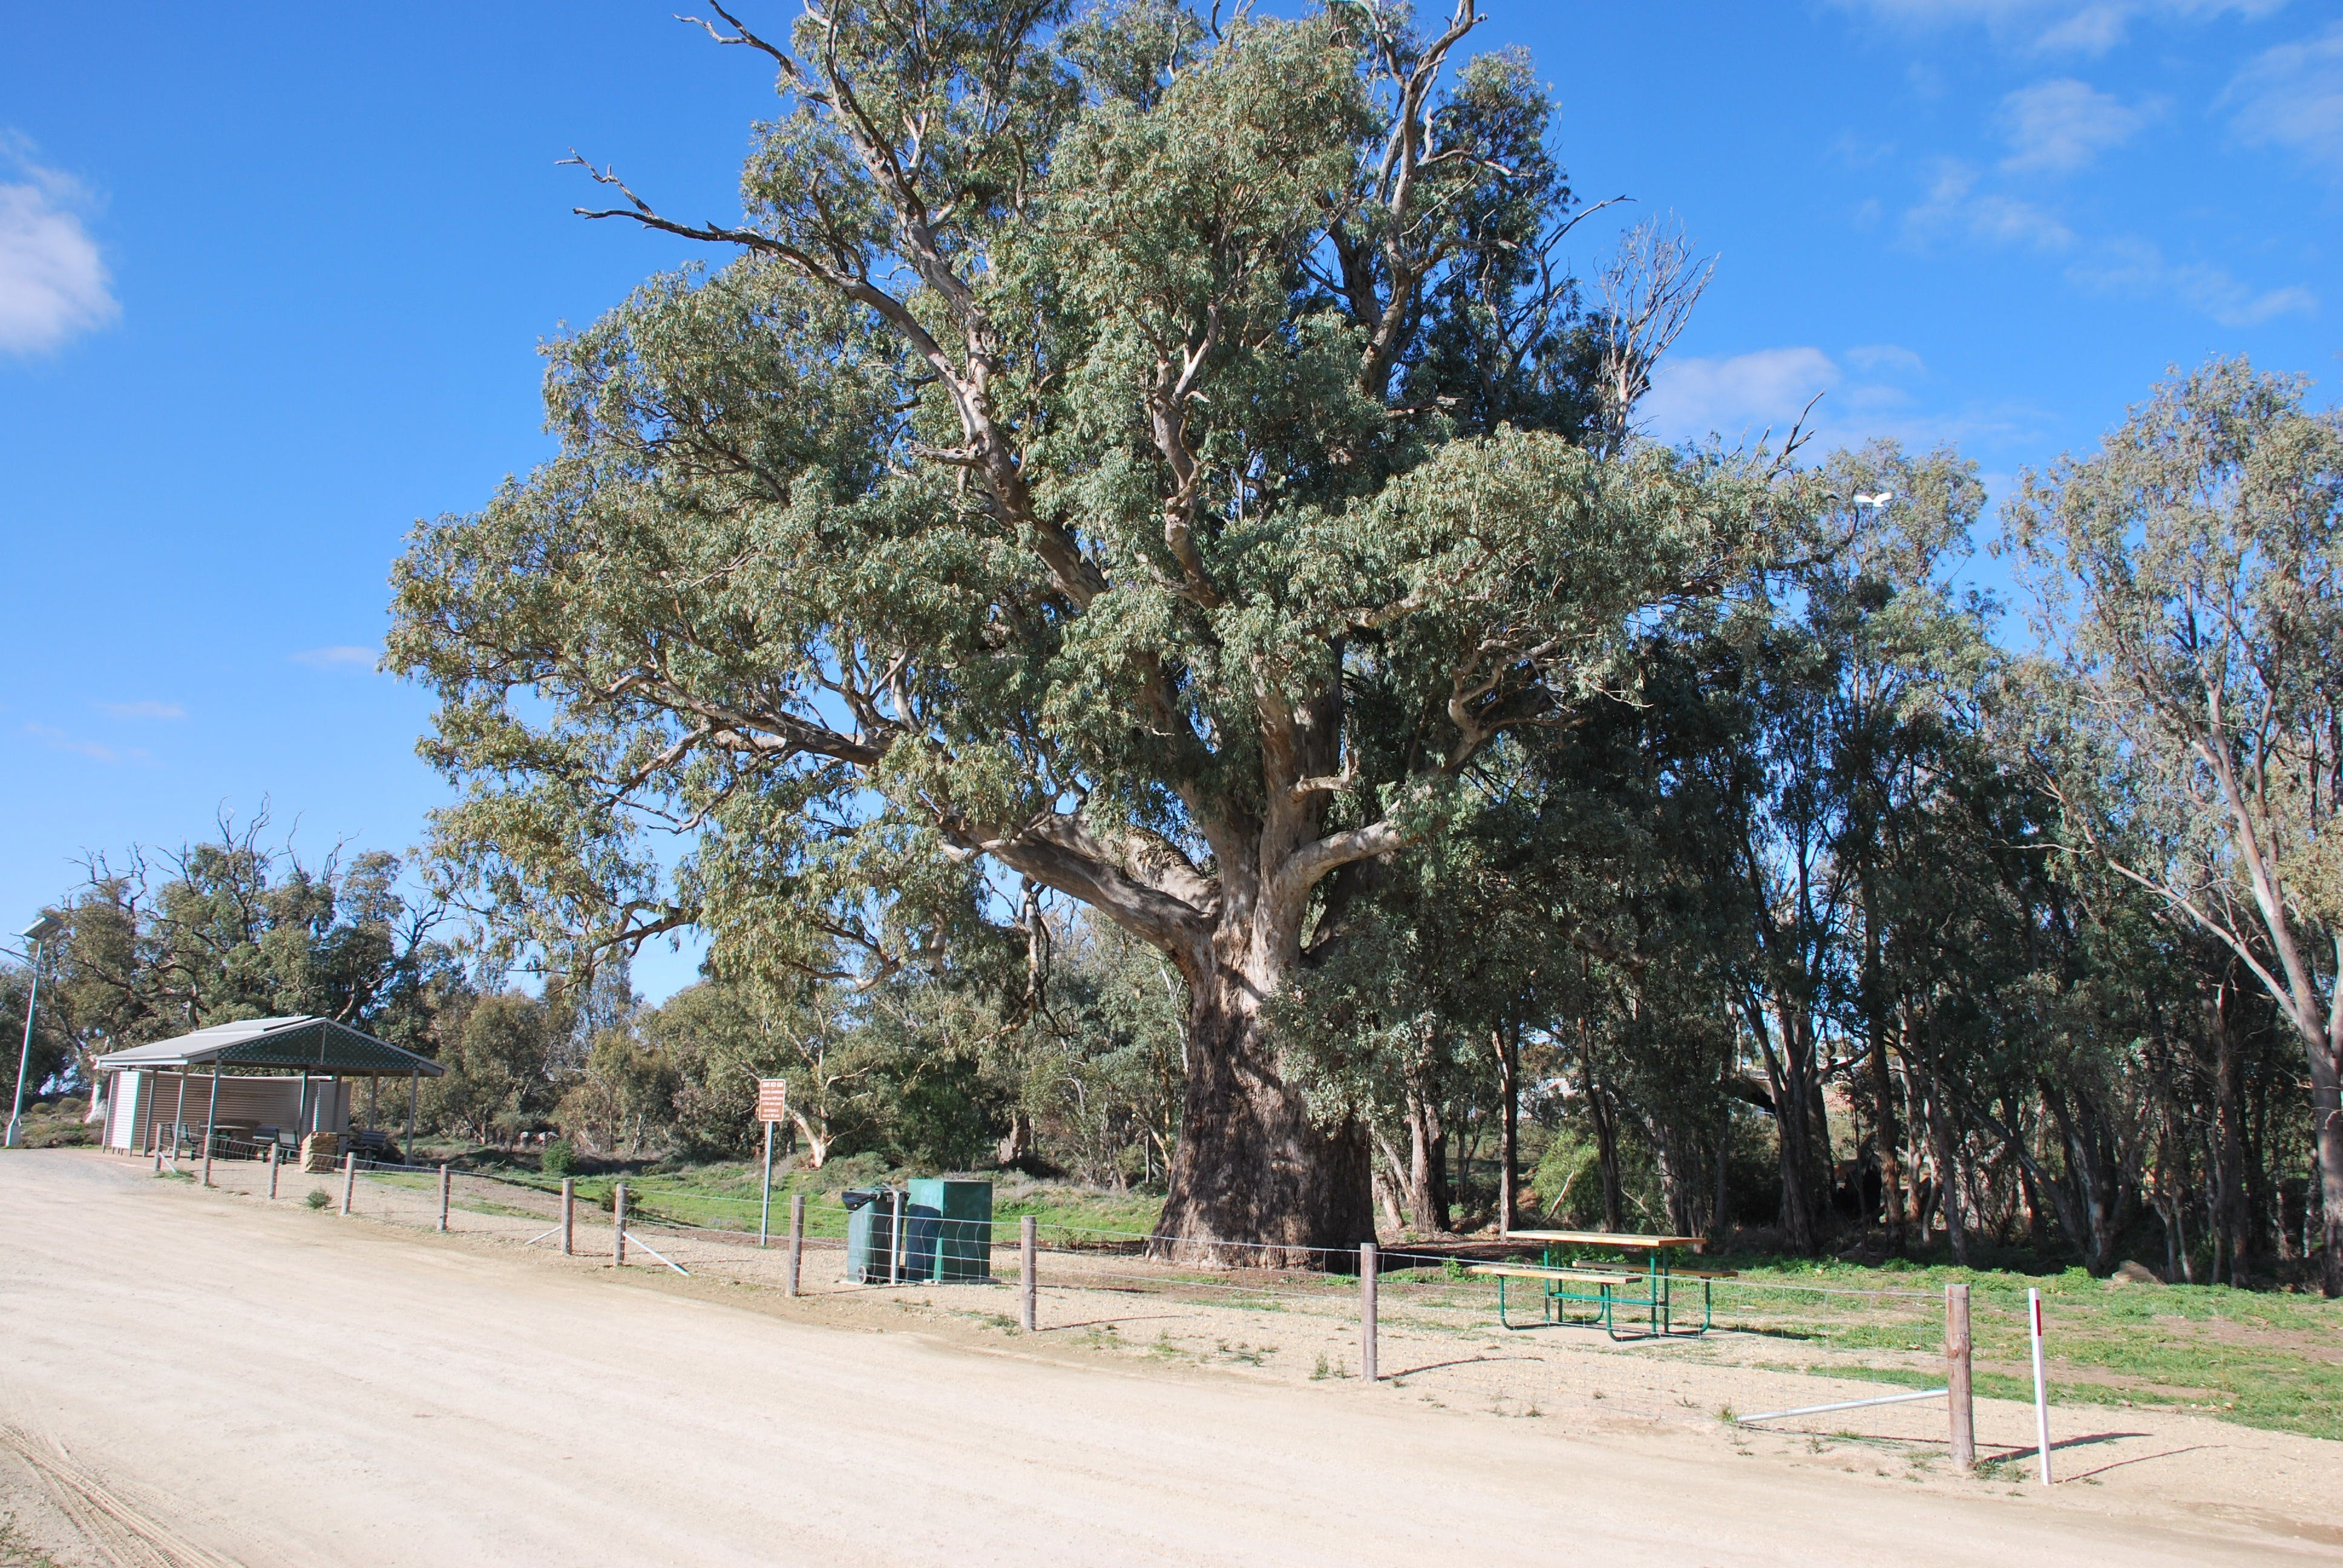 Giant Gum Tree - Accommodation Adelaide